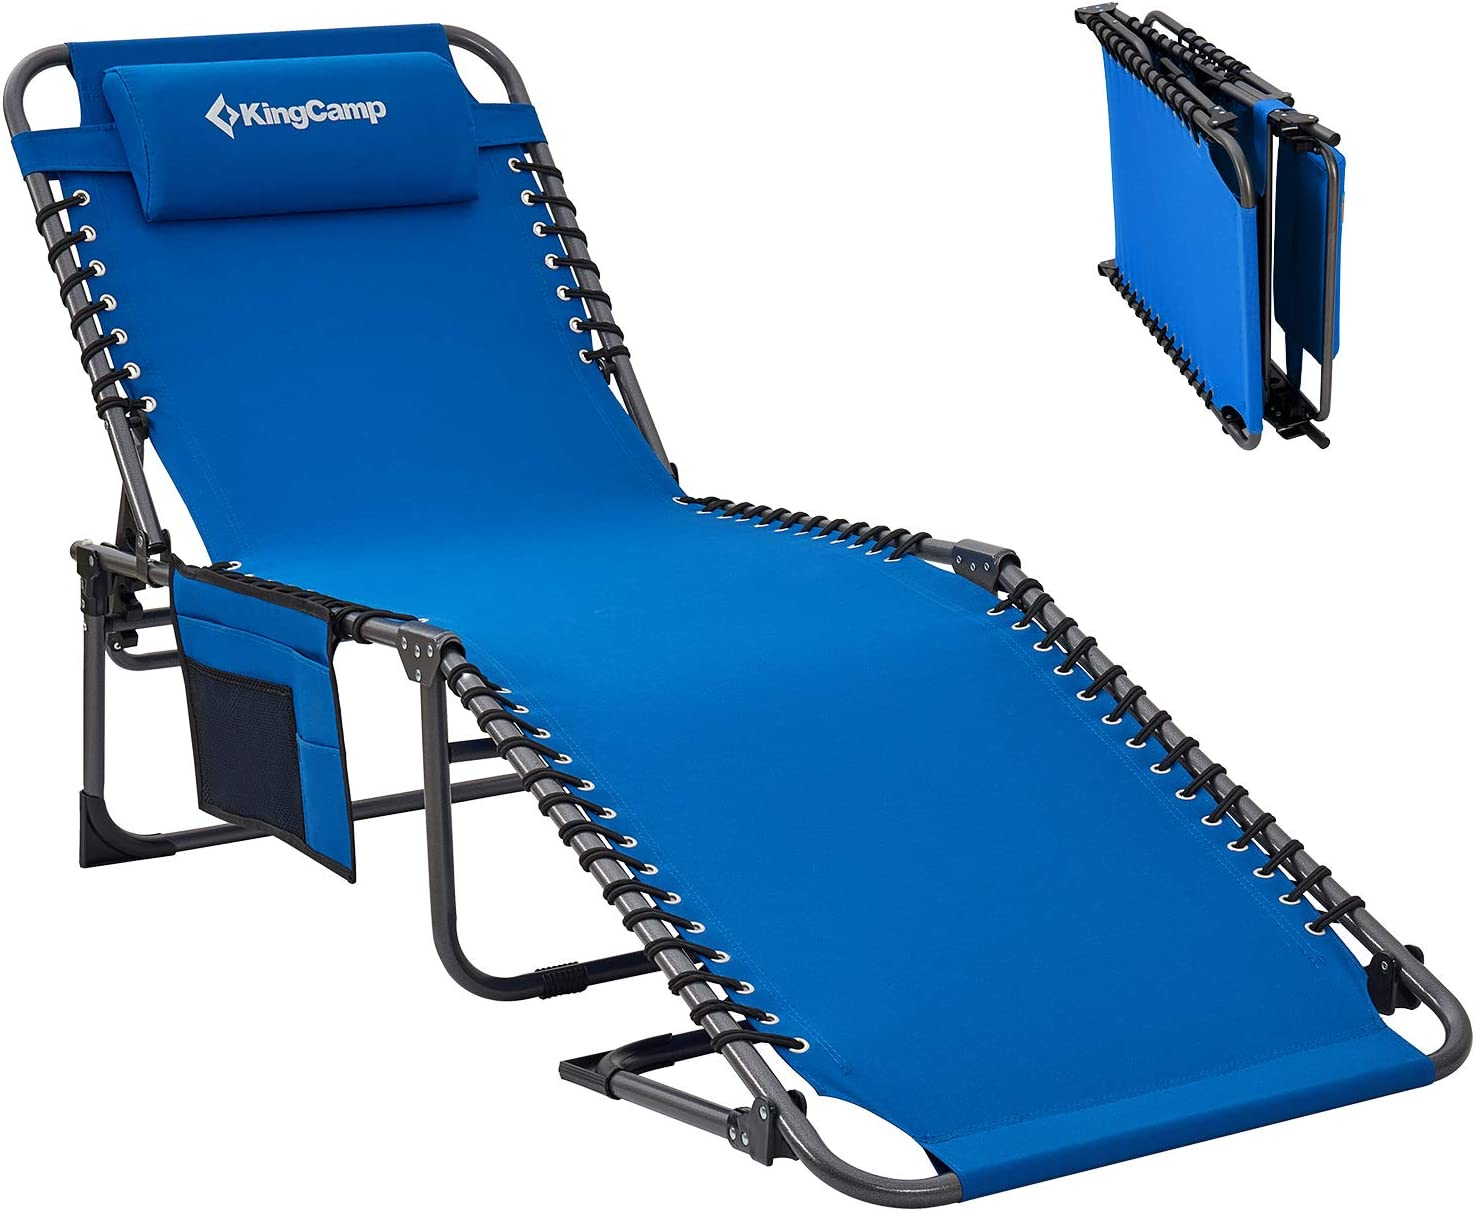 KingCamp 4-Fold Outdoor Folding Chaise Lounge Chair for Beach, Sunbathing, Patio, Pool, Lawn, Deck, Portable Lightweight Heavy-Duty Adjustable Camping Reclining Chair with Pillow, Blue